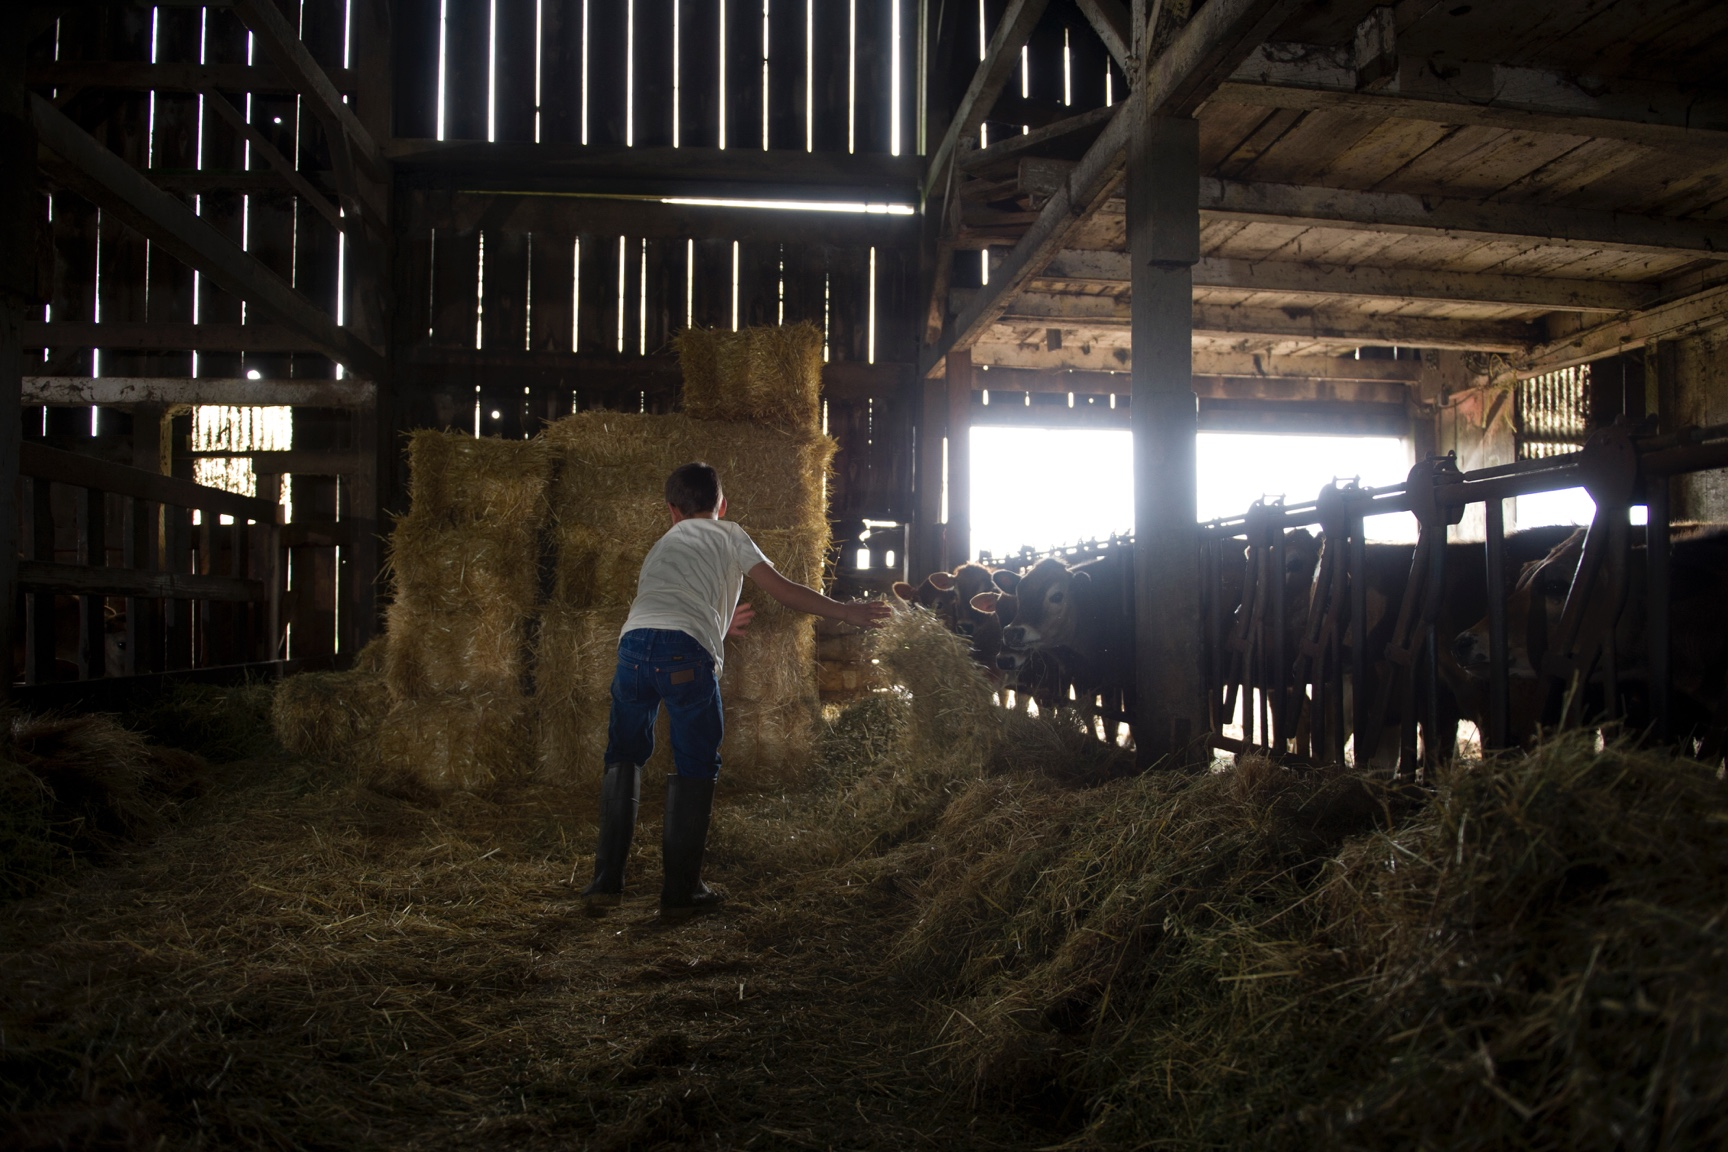 A boy in a white shirt, jeans and boots tosses grass hay to cows.